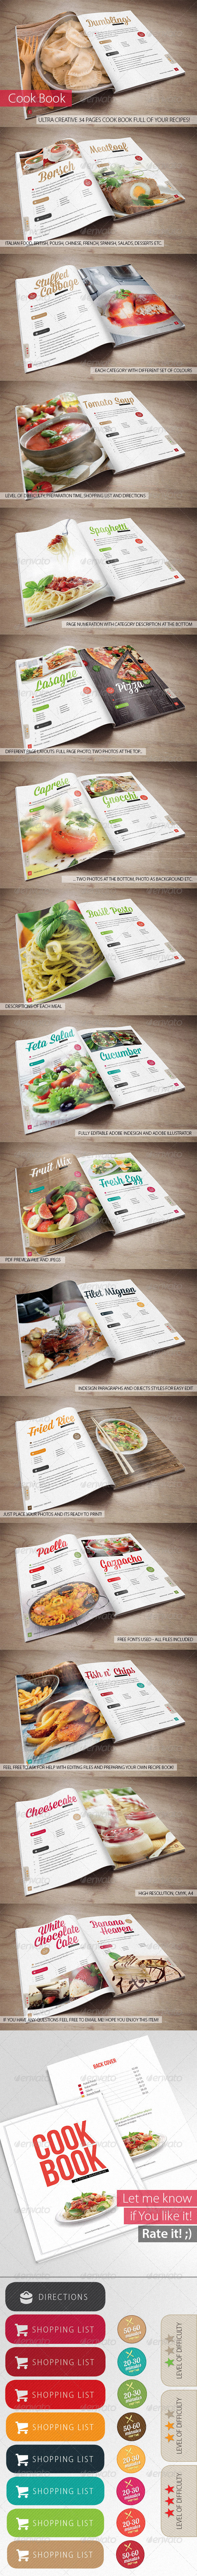 GraphicRiver Cook Book Your Recipes 5826114